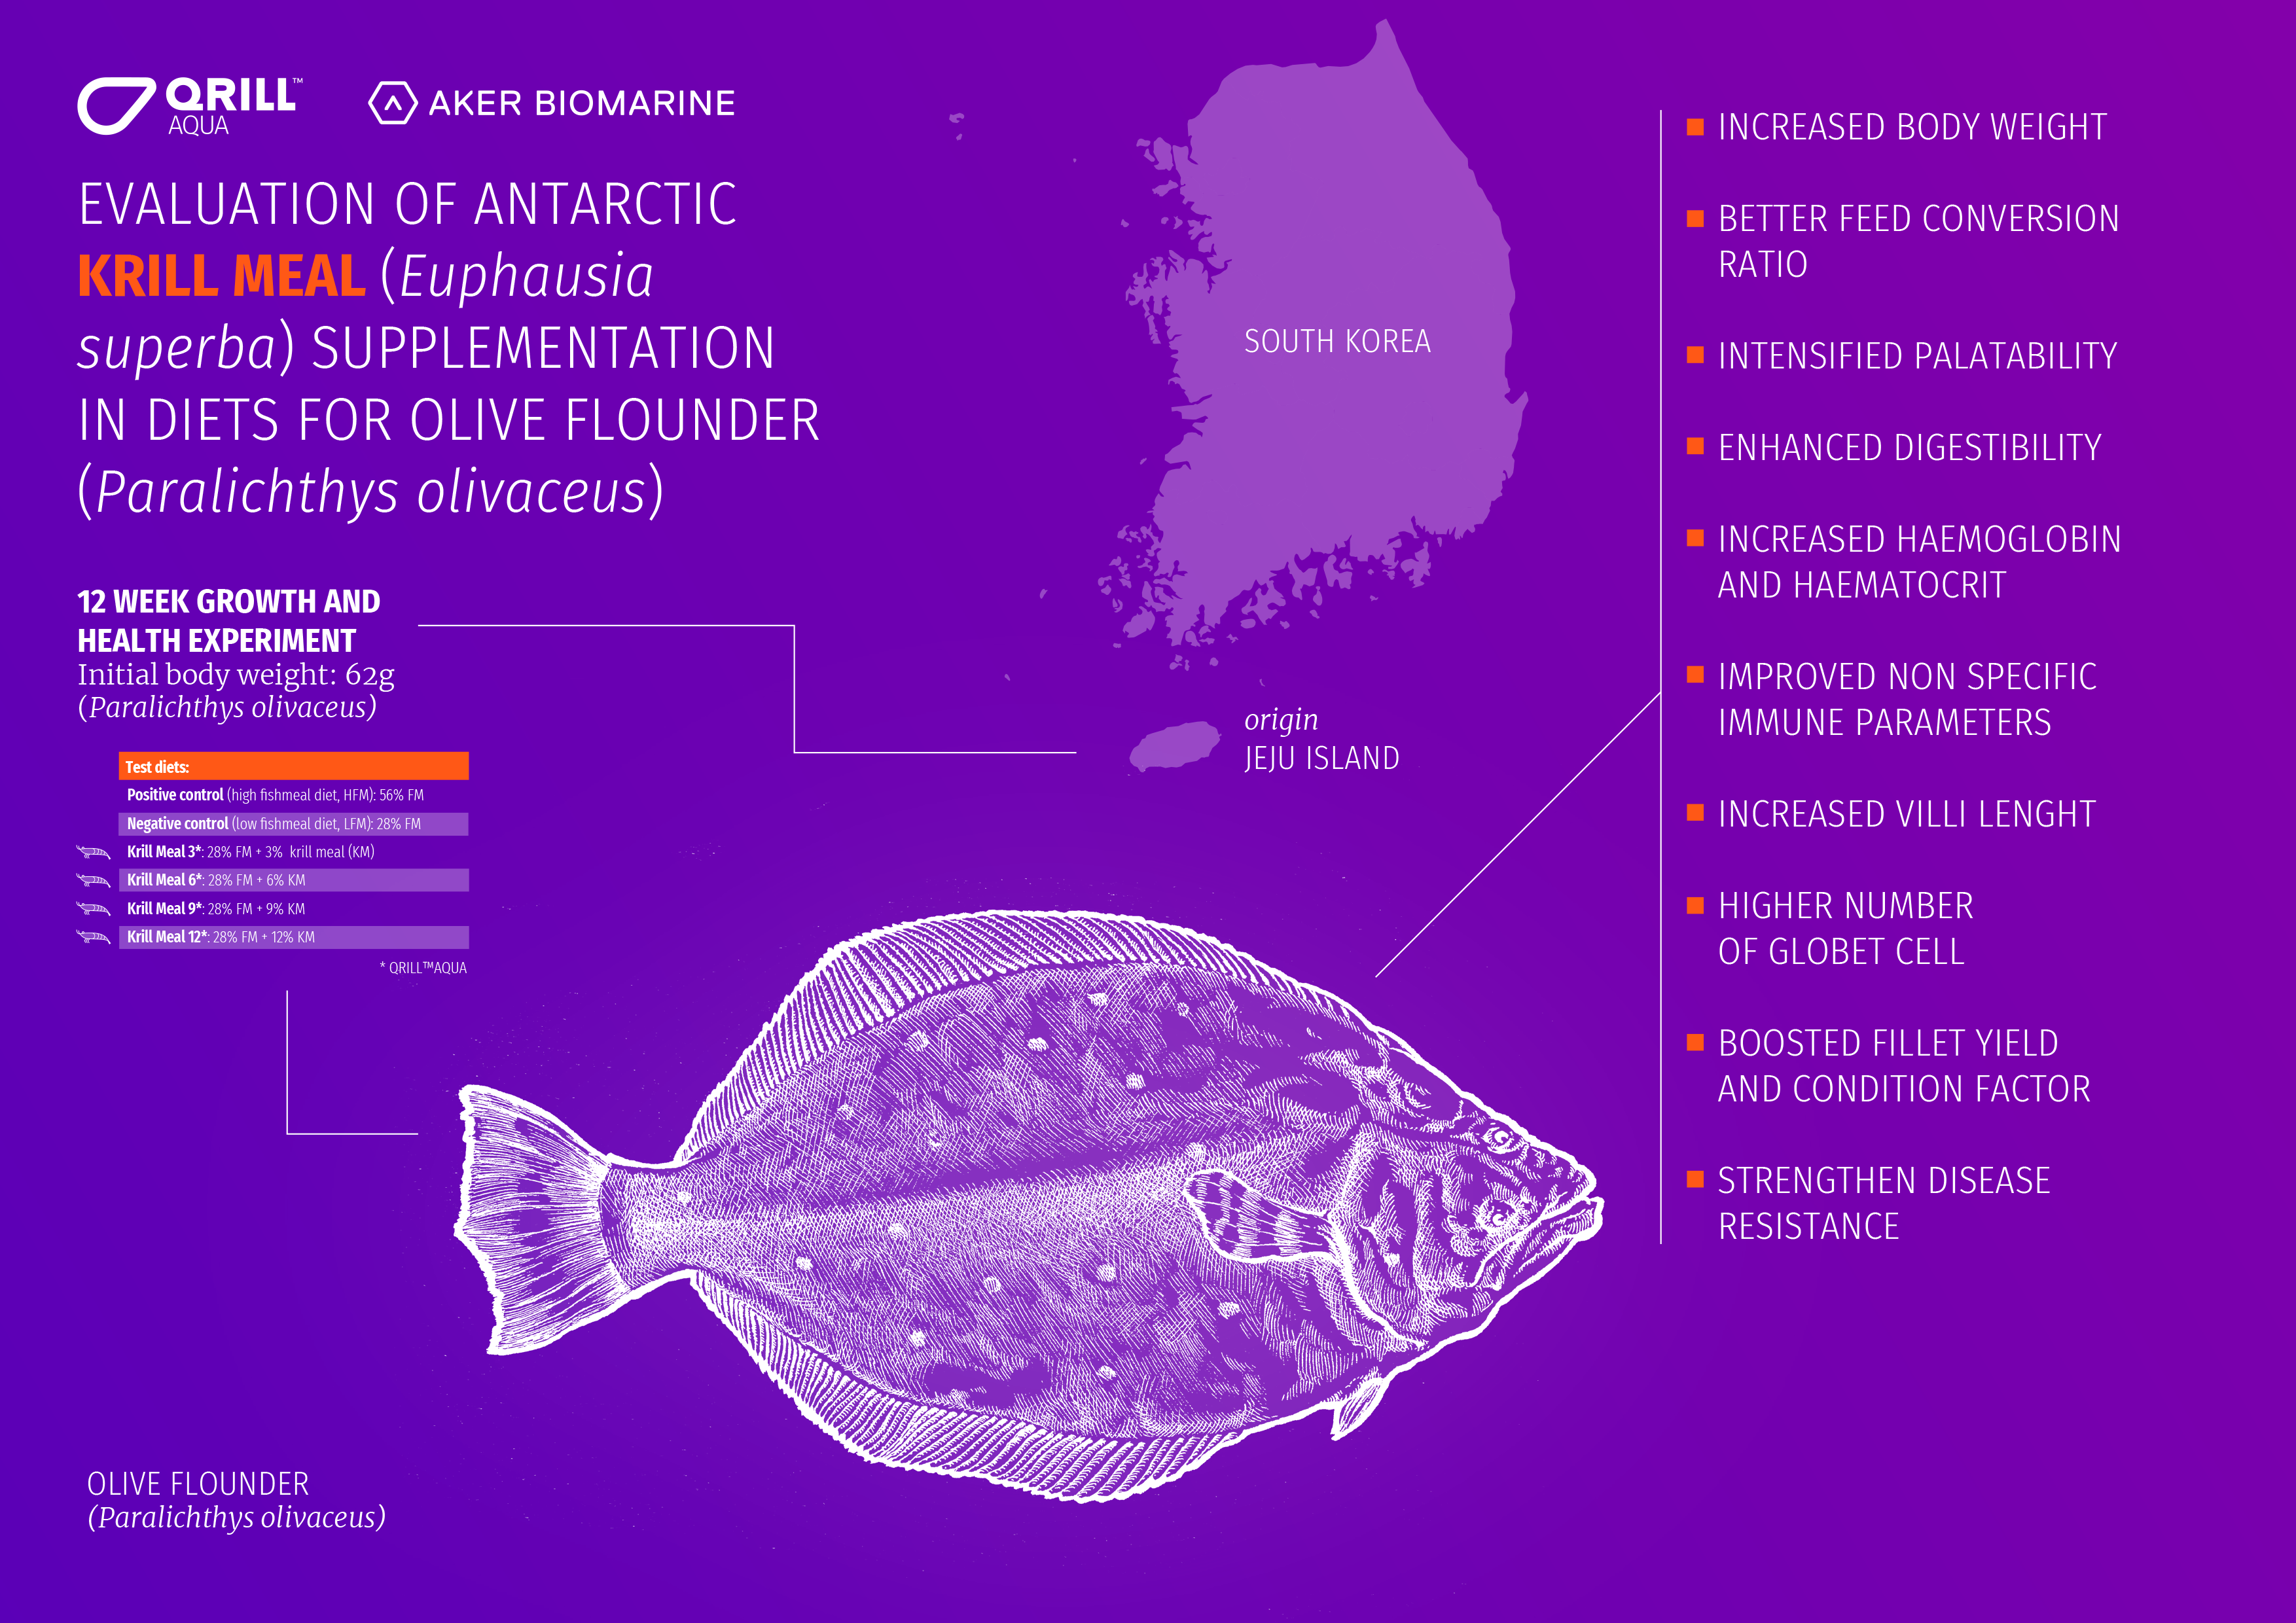 Olive flounder study overview infographic